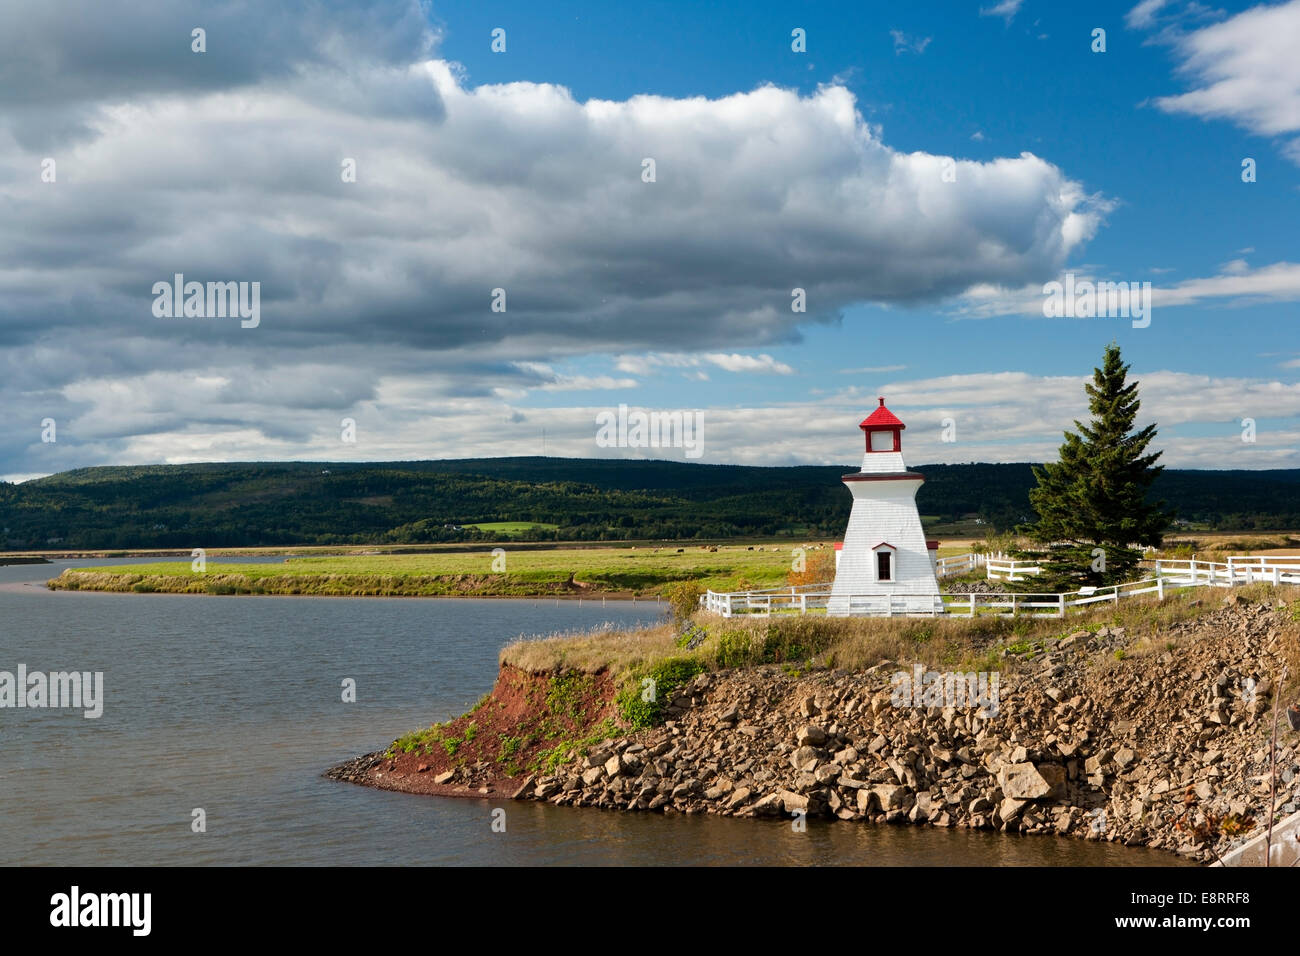 Anderson Hollow Lighthouse at Shipyard Park at Harvey Bank - Mary's Point Road, Harvey, New Brunswick, Canada - Stock Image